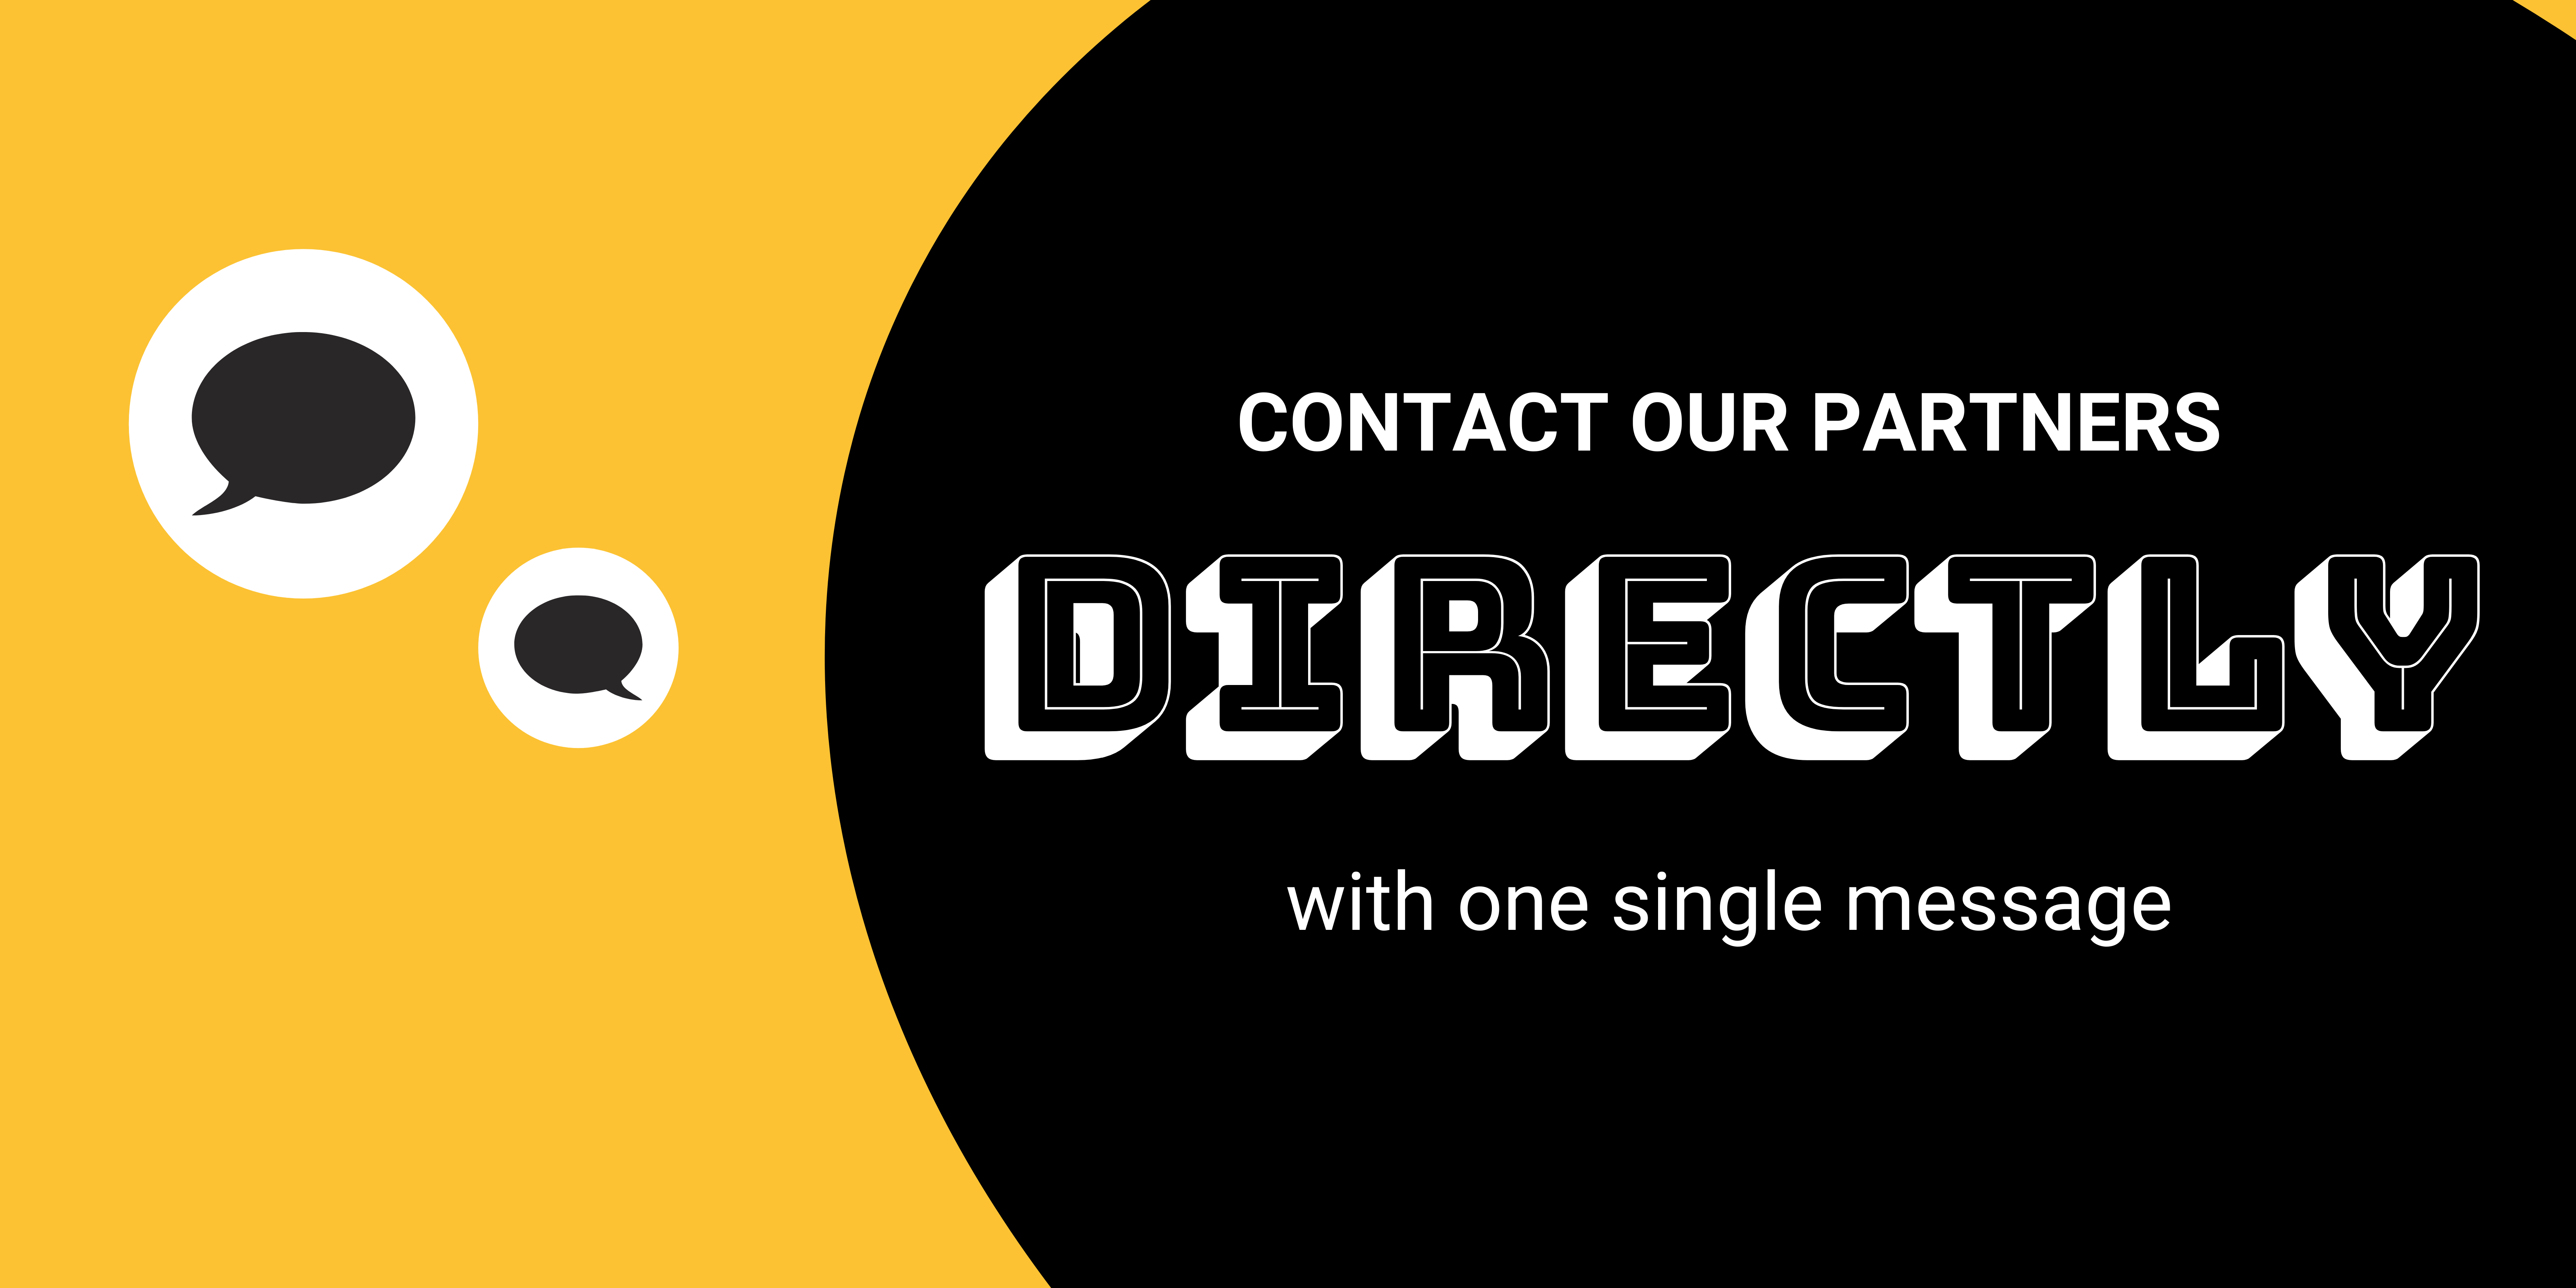 ask our partners directly